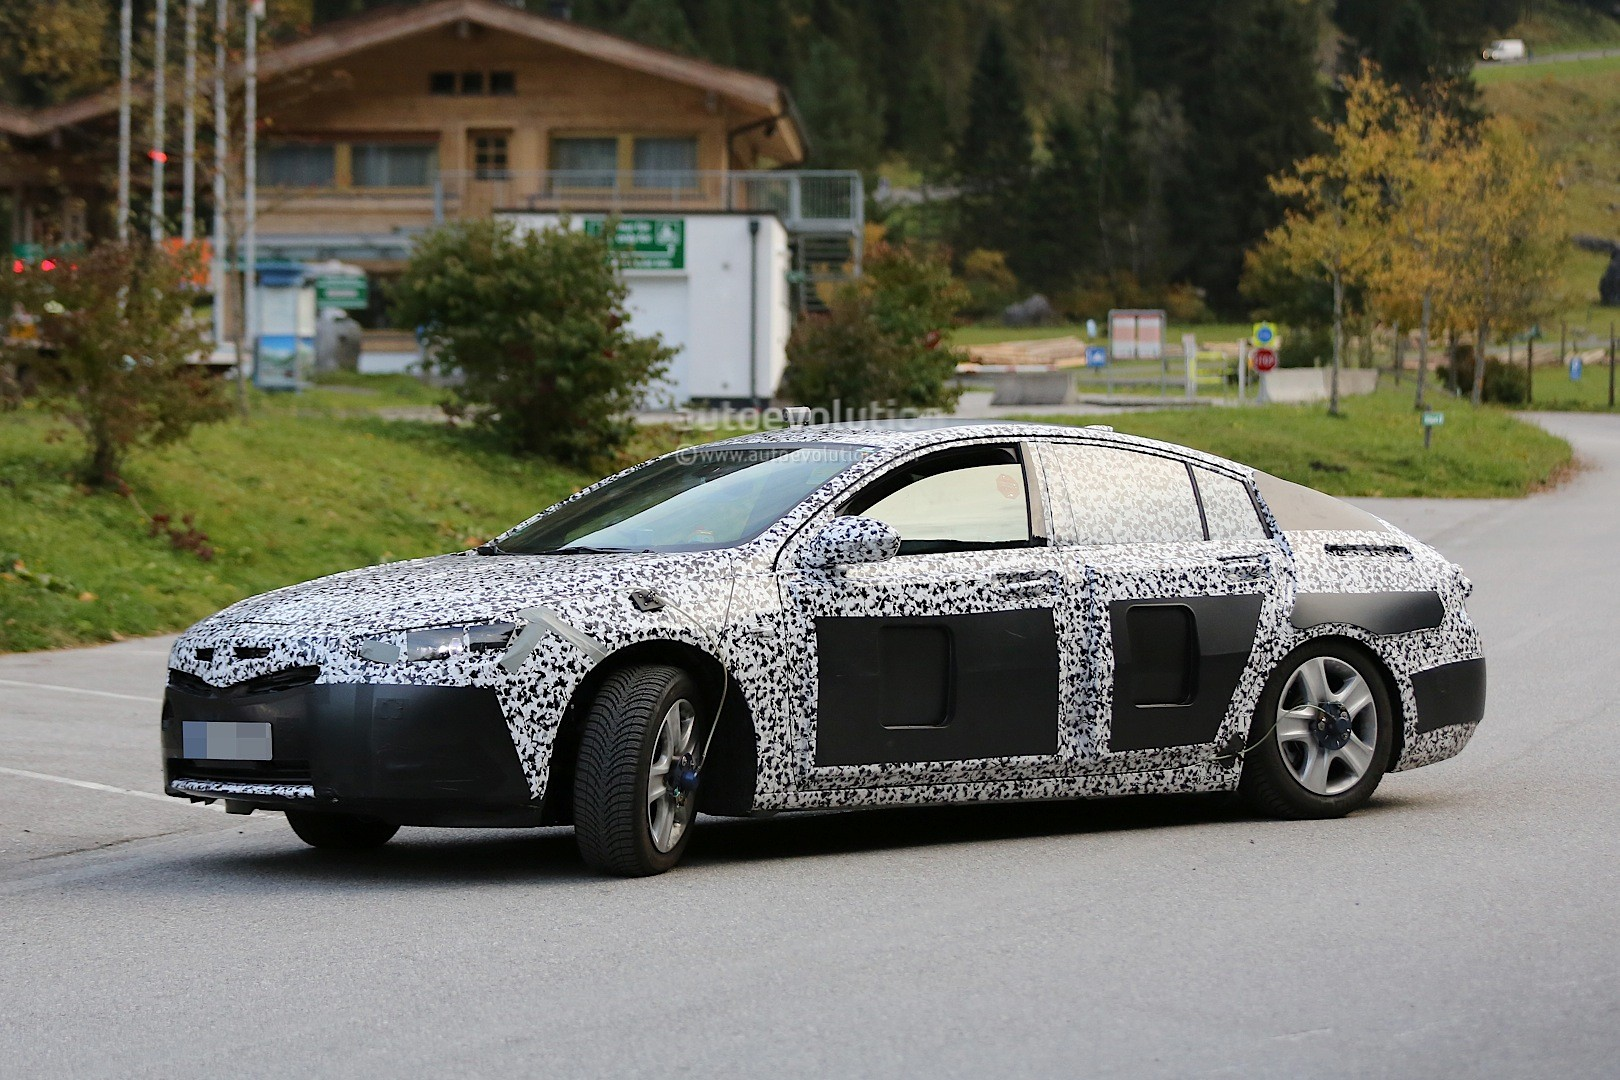 spyshots 2017 opel insignia test mule looks gigantic autoevolution. Black Bedroom Furniture Sets. Home Design Ideas